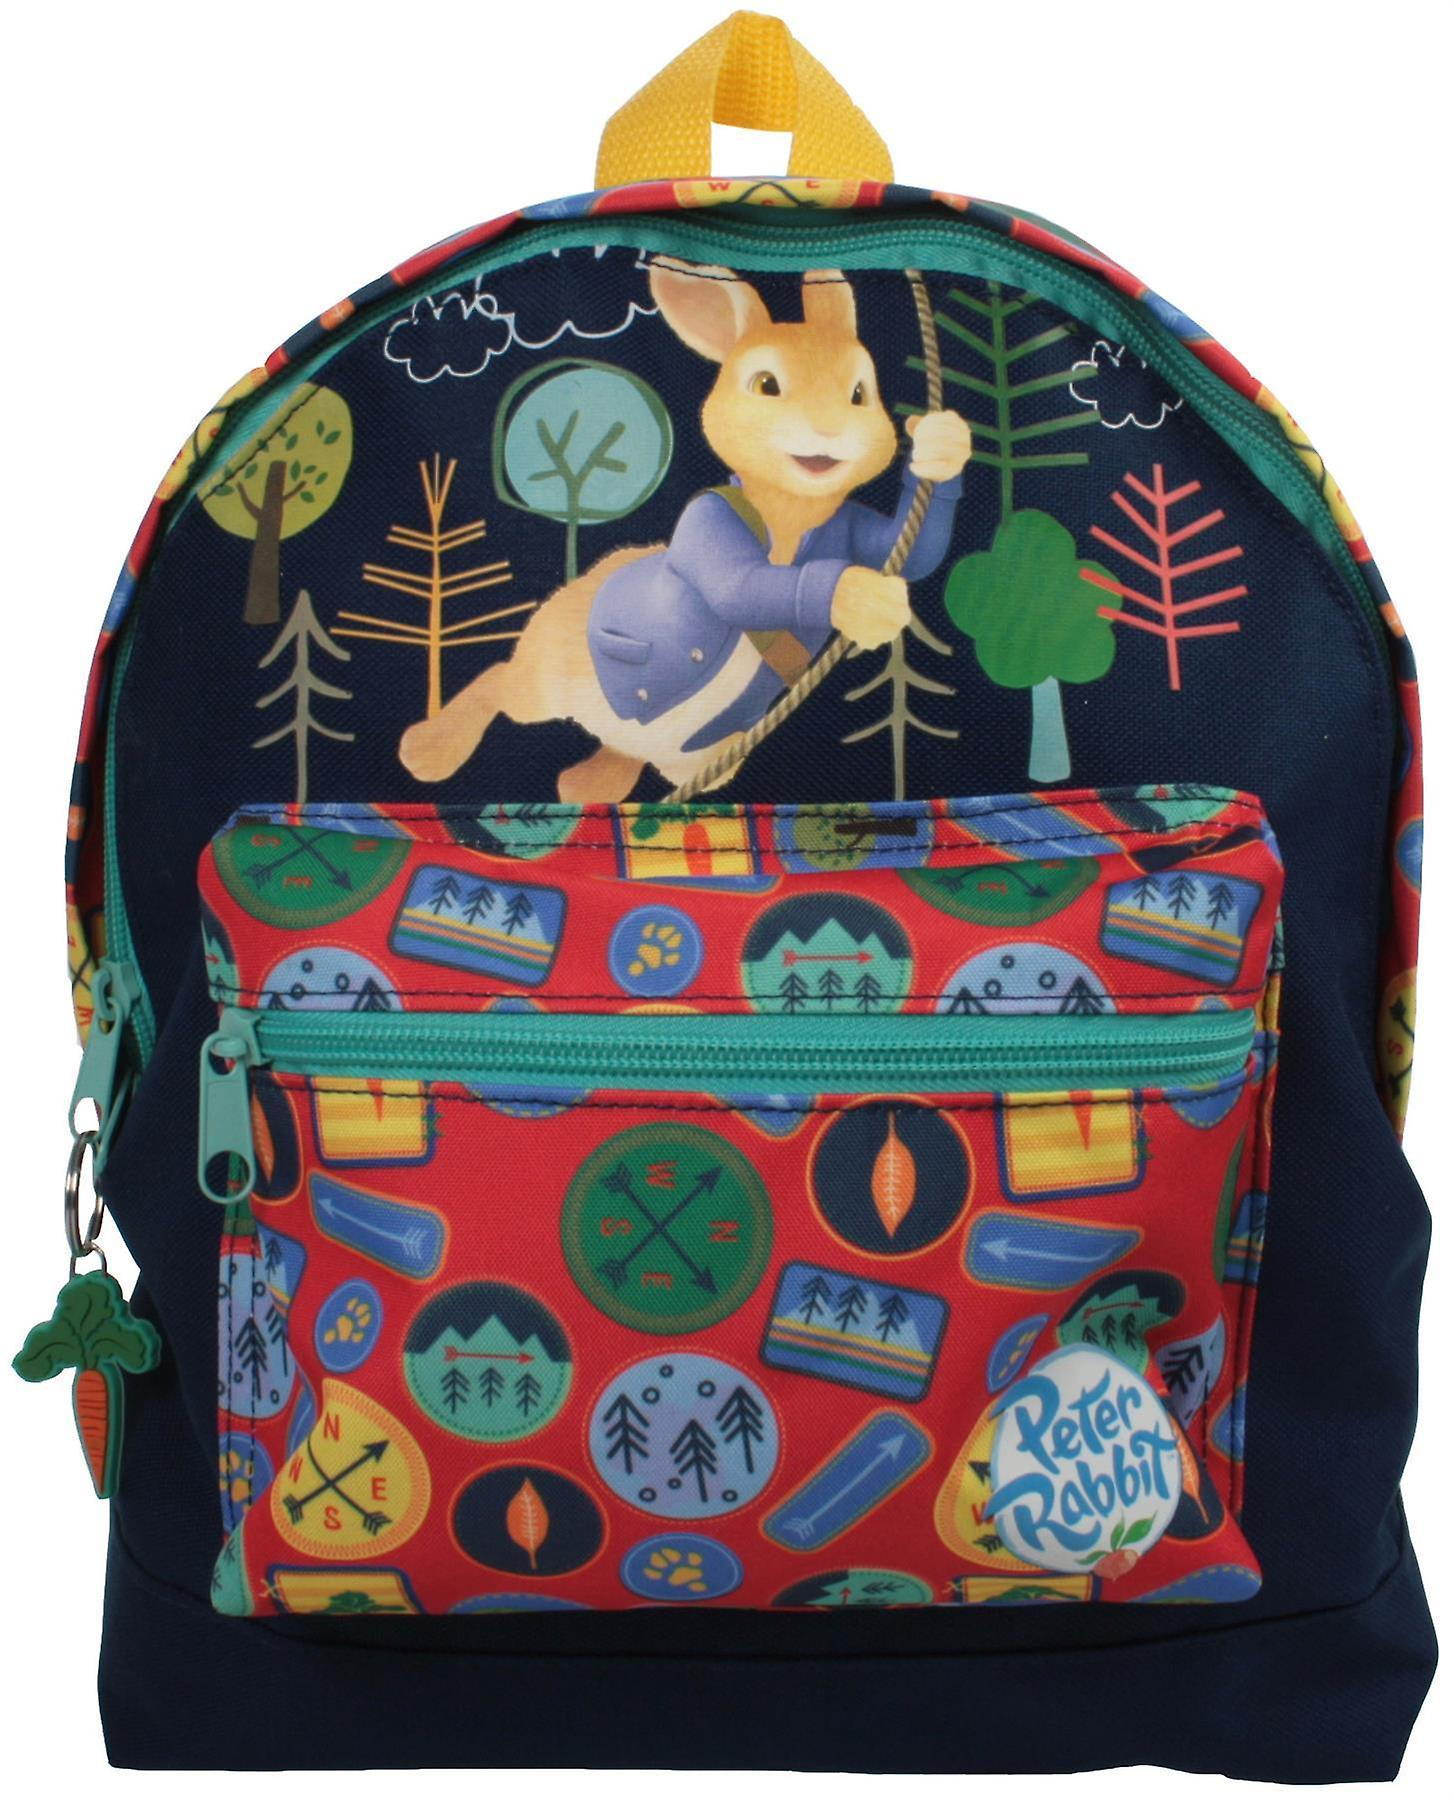 Trade Mark Collections Peter Rabbit Mini Roxy Backpack